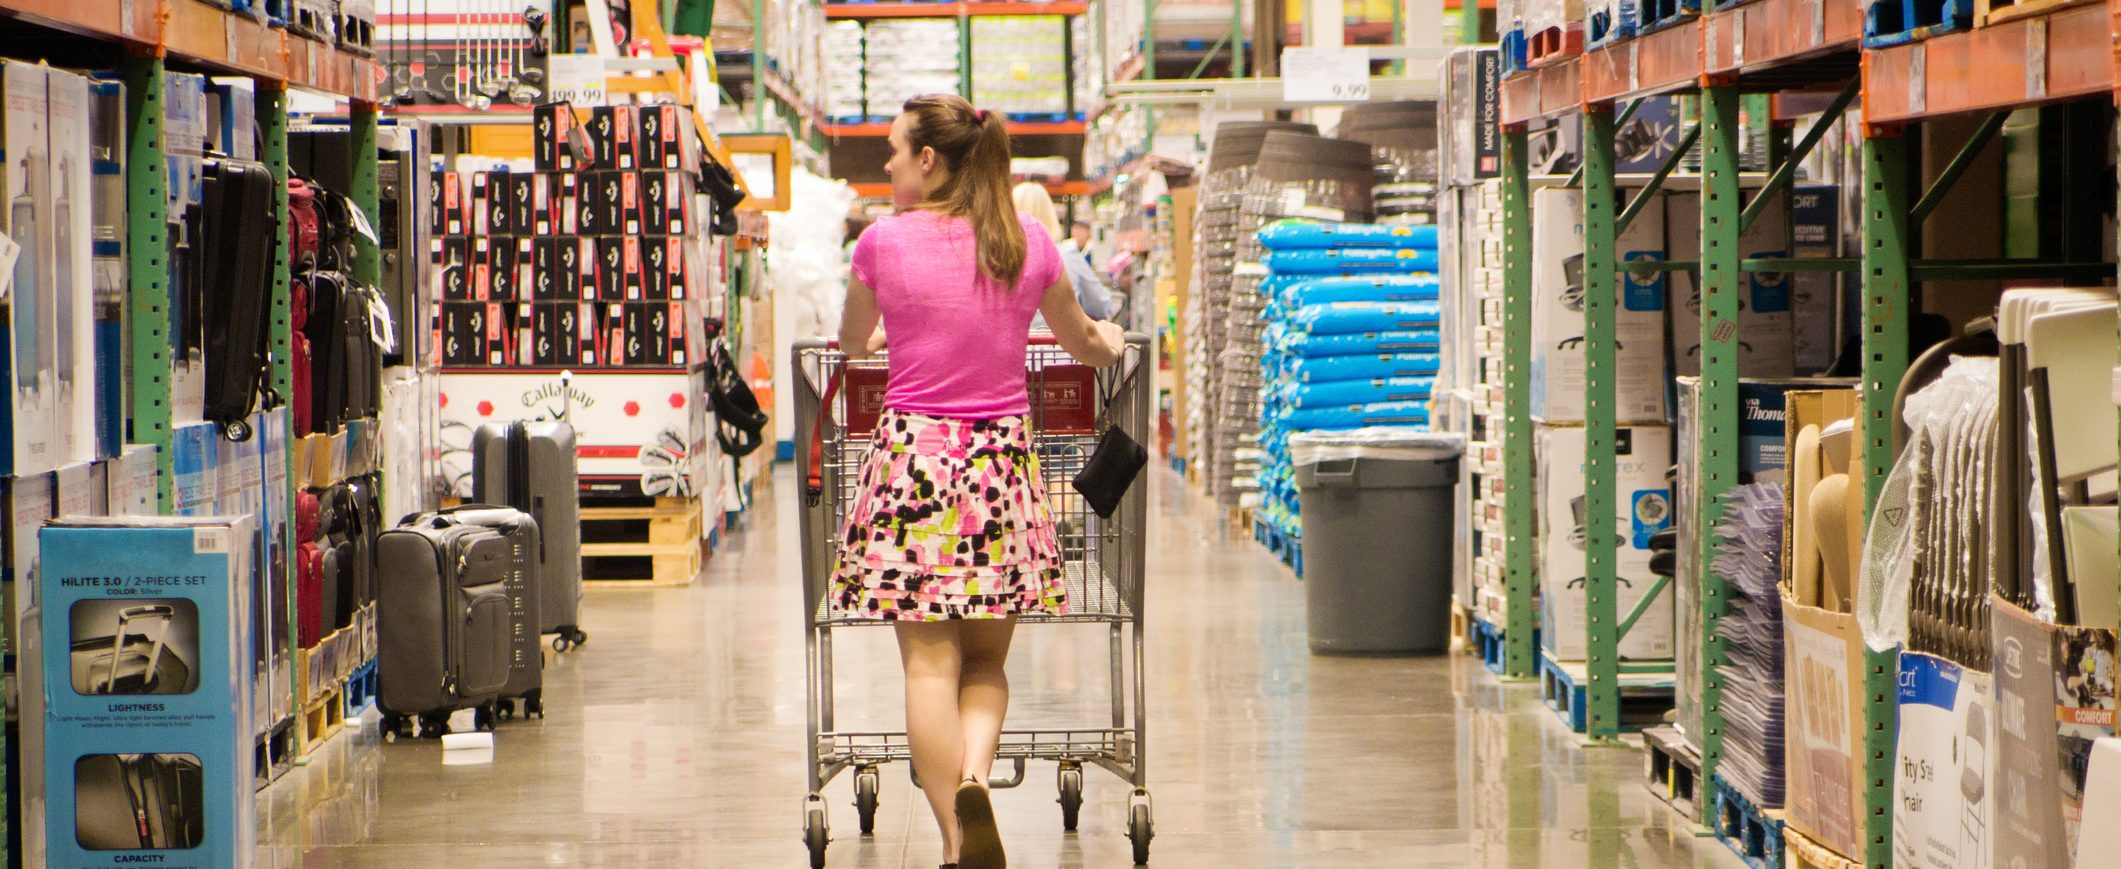 Shopping at warehouse clubs can help you boost your savings